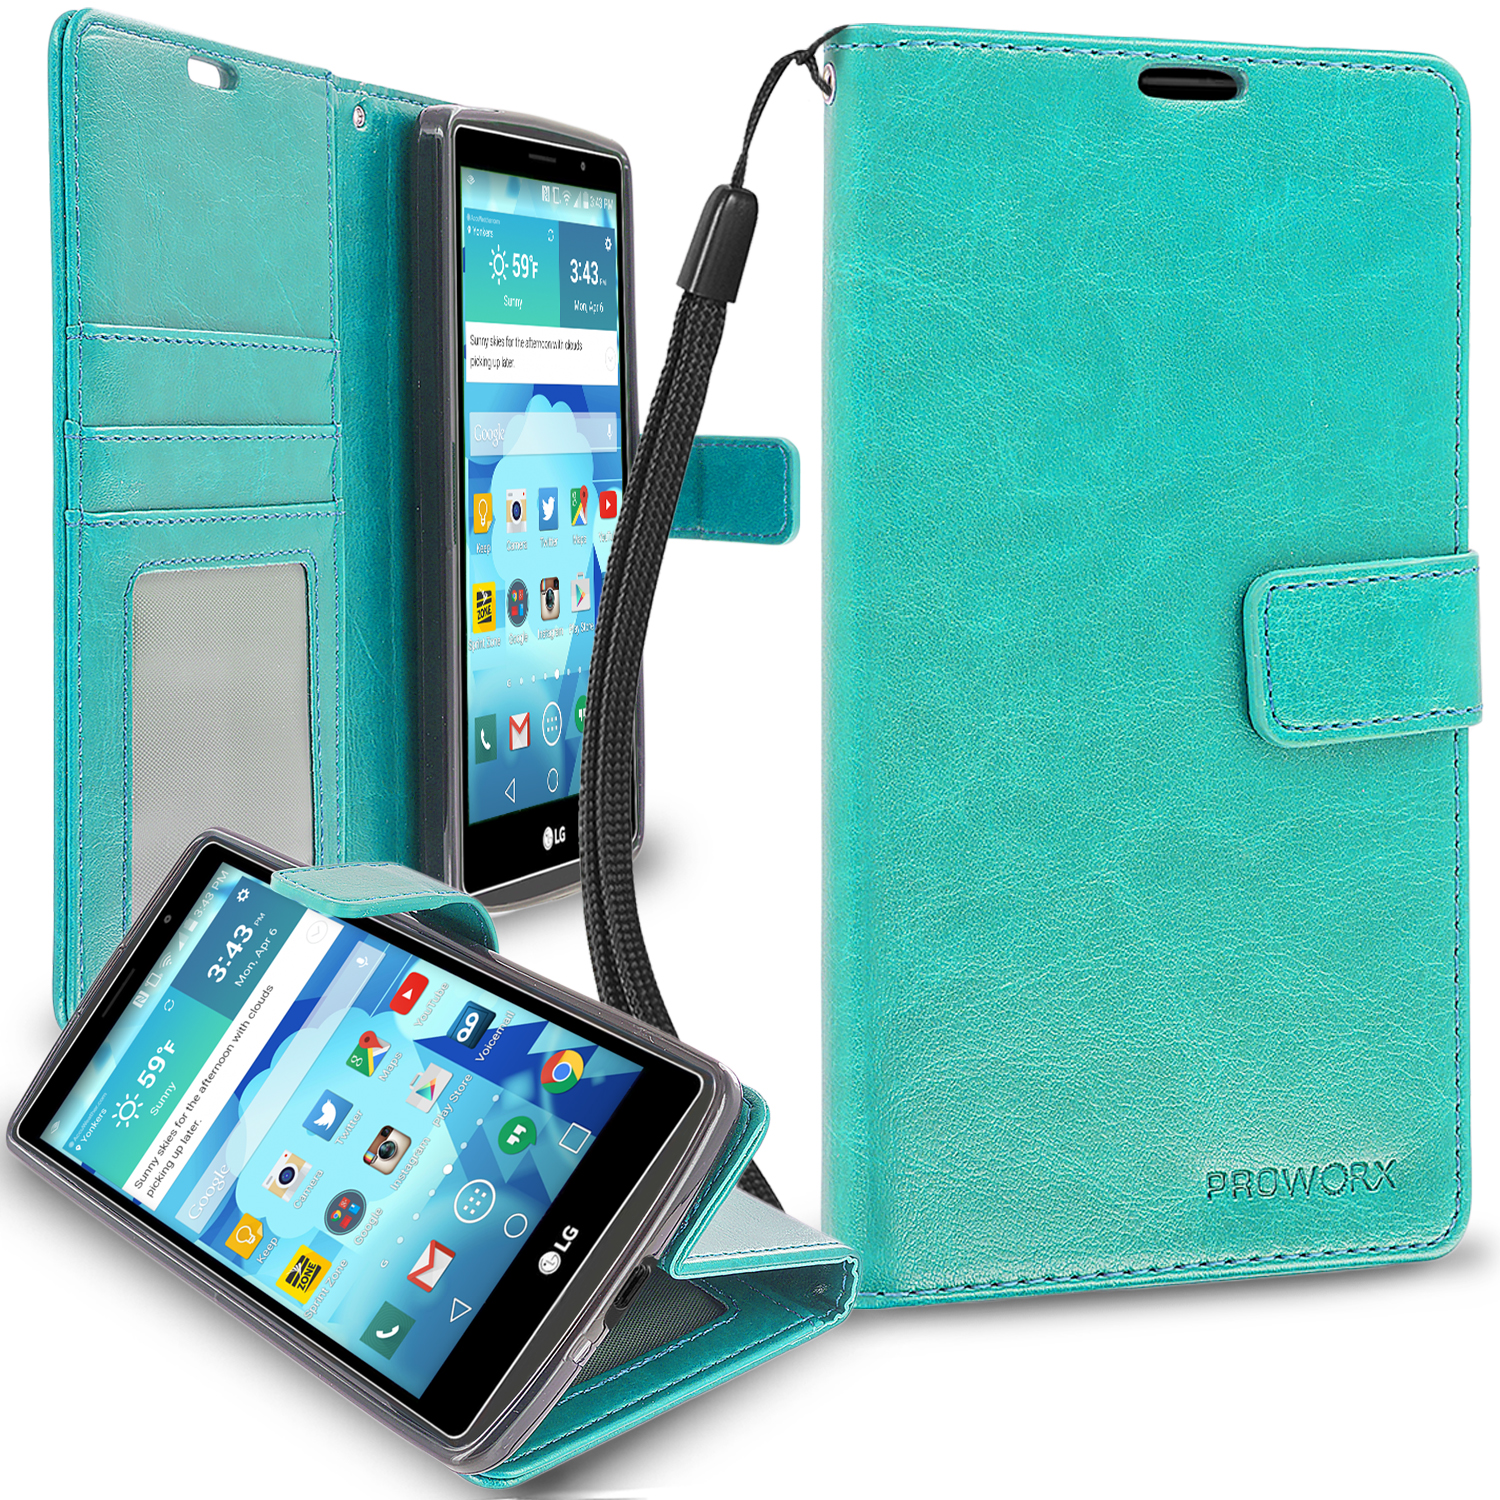 LG G Vista 2 Mint Green ProWorx Wallet Case Luxury PU Leather Case Cover With Card Slots & Stand